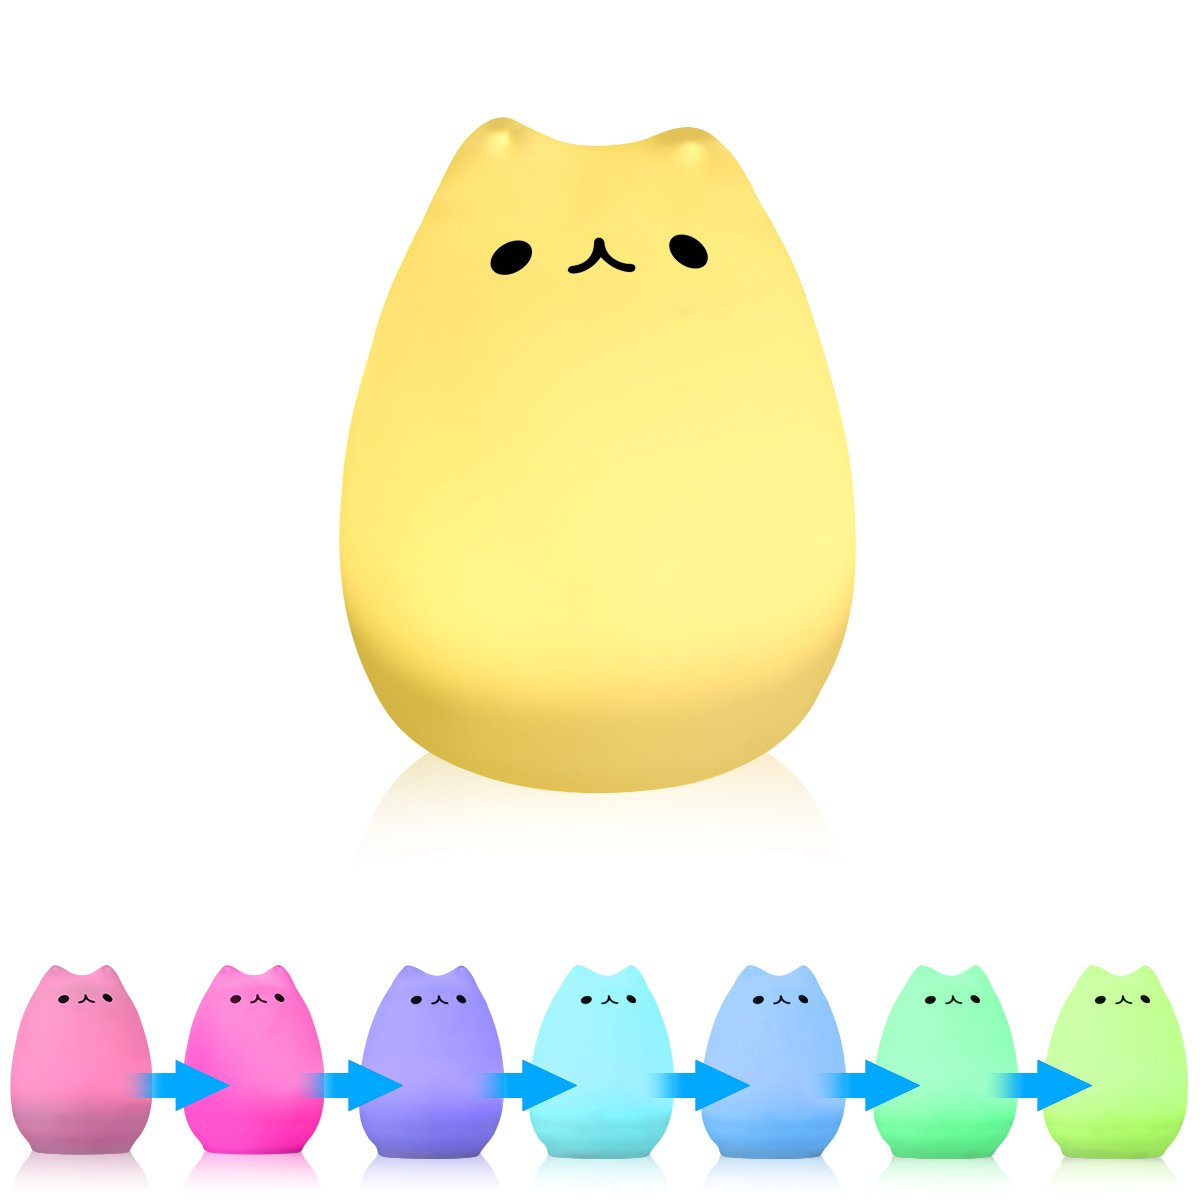 Excelvan Cute Cat Table Lamp Kitty Silicon Night Light LED with Sensitive Tap Control 7 Changing LED Romantic and Warm White Modes Kids Gift for Bedroom Bar Club Lounge